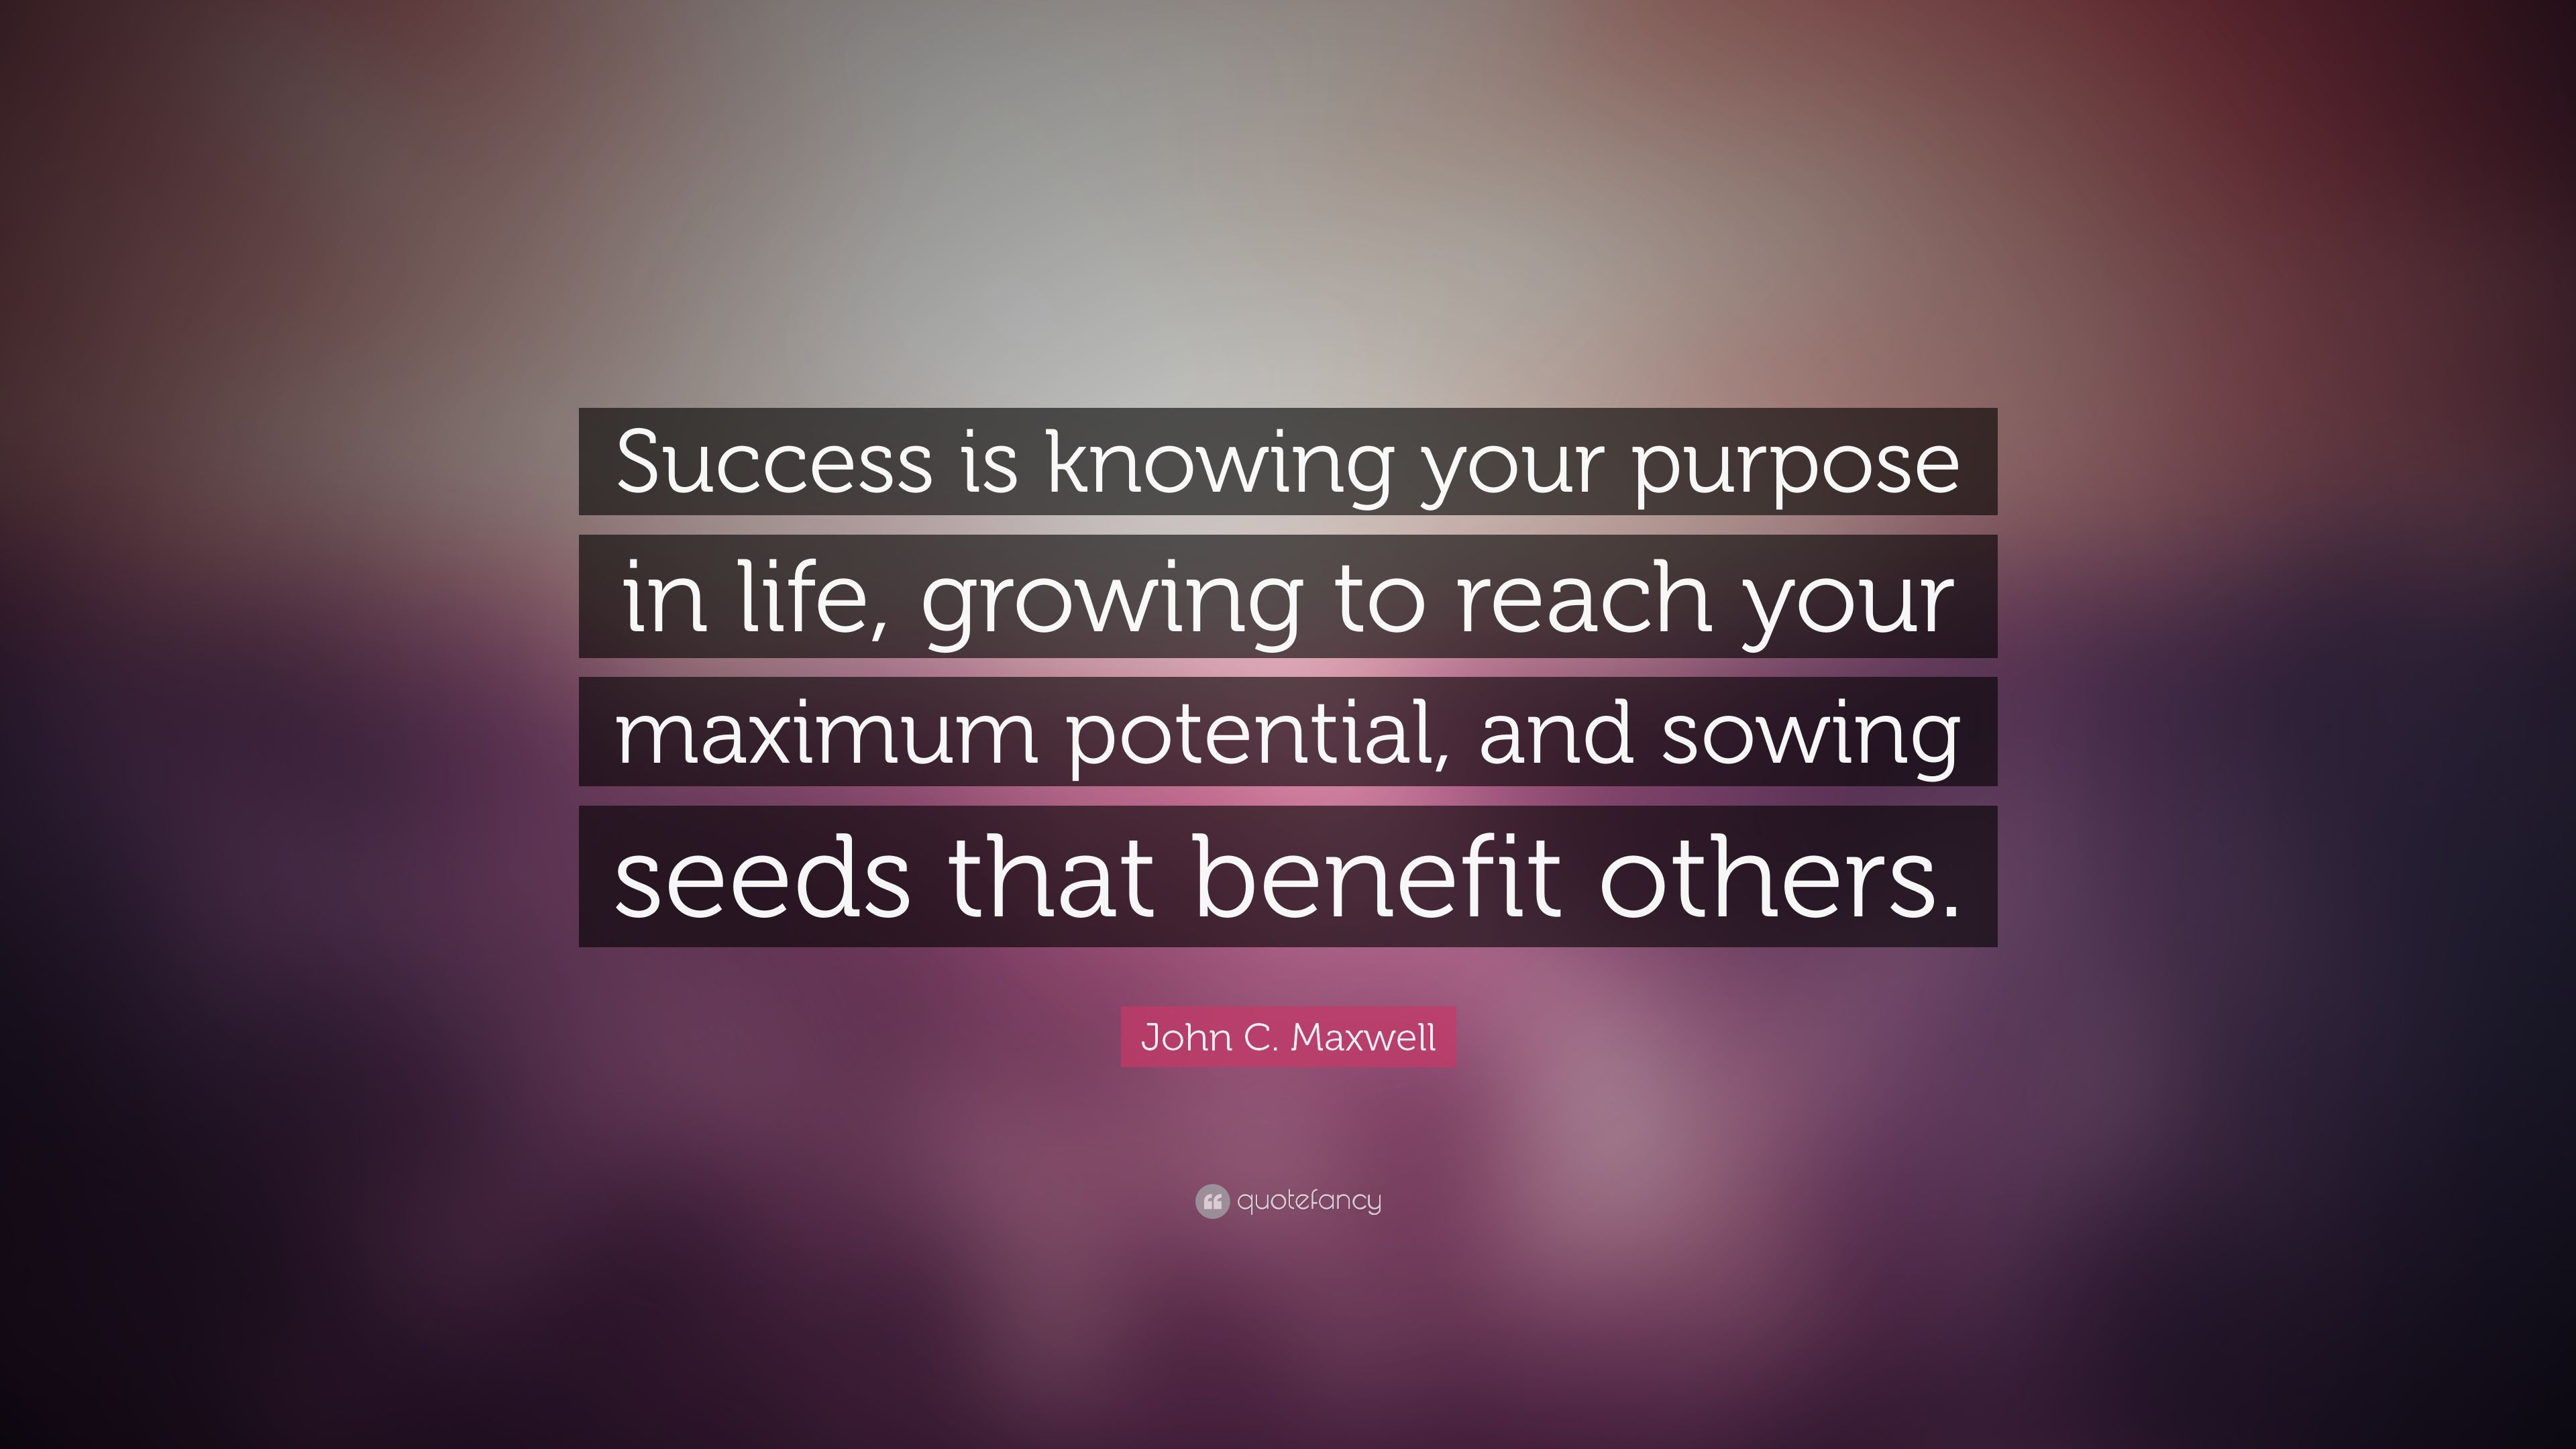 John C Maxwell Quote Success Is Knowing Your Purpose In Life